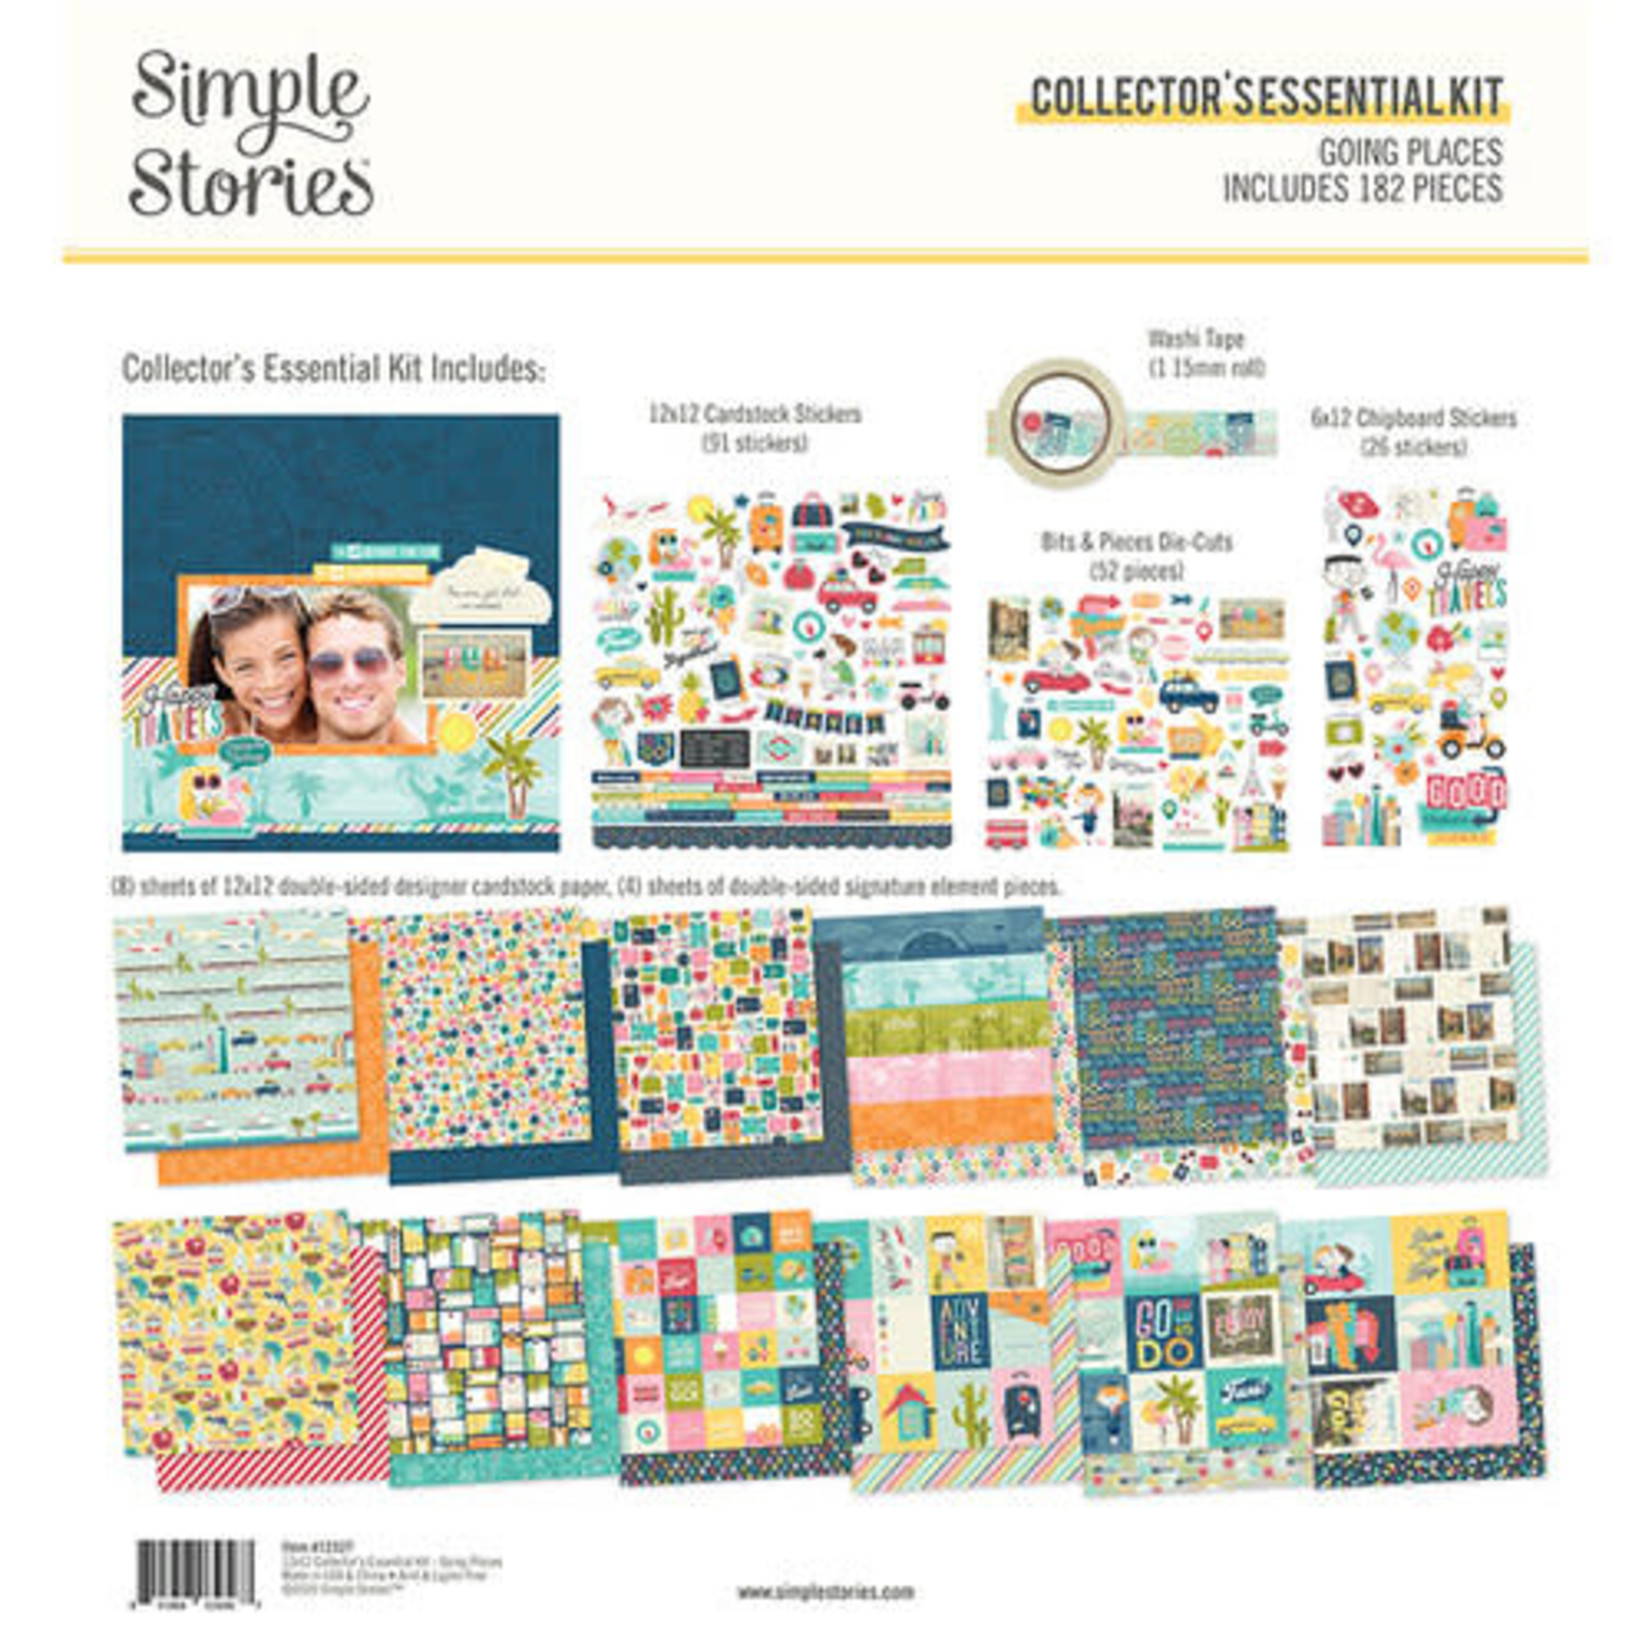 Simple Stories Simple Stories - Collector's Essential Kit - Going Places